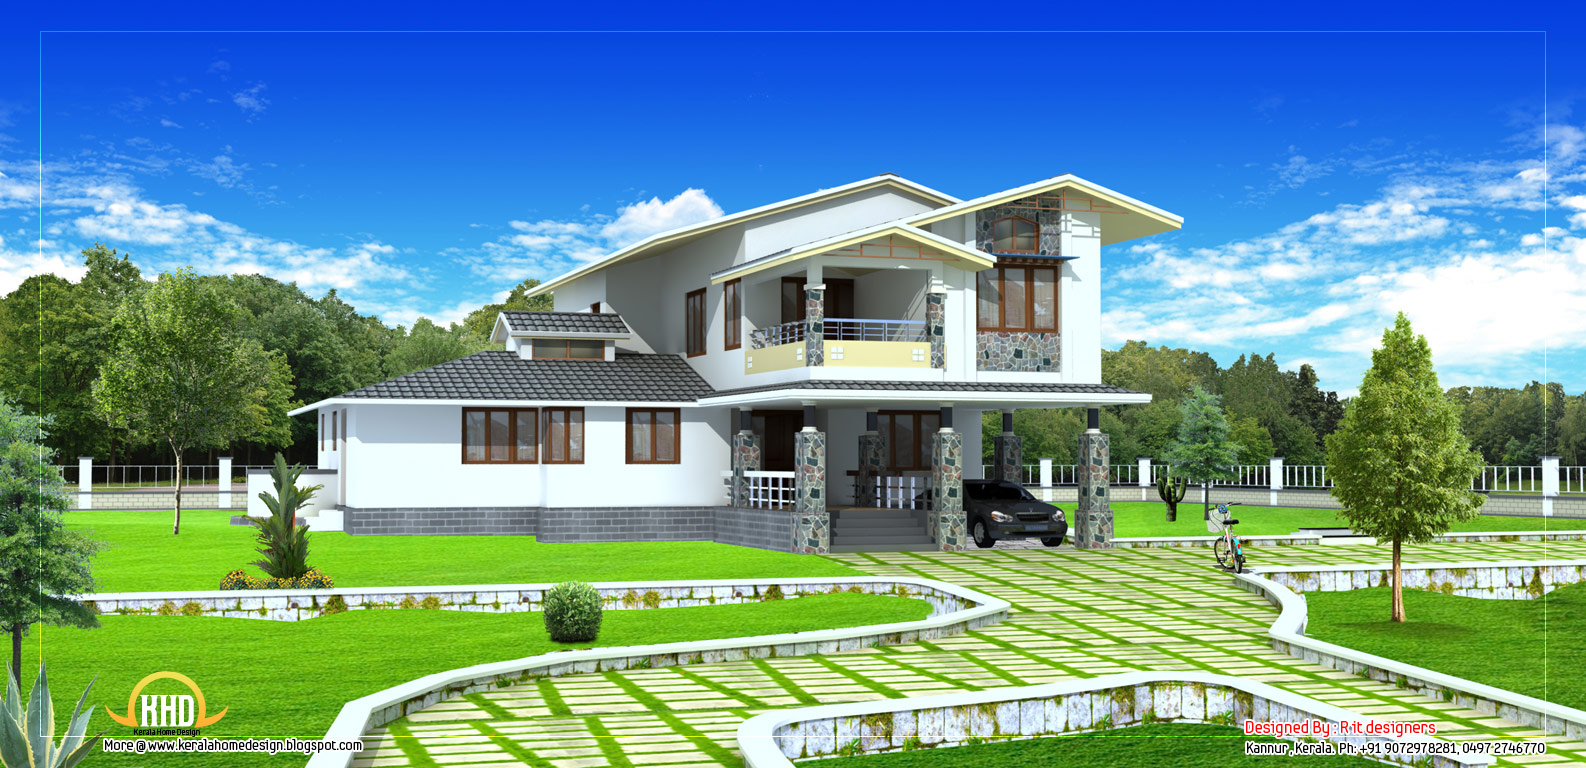 2 story house plan 2490 sq ft kerala home design and for Two storey house plans in kerala